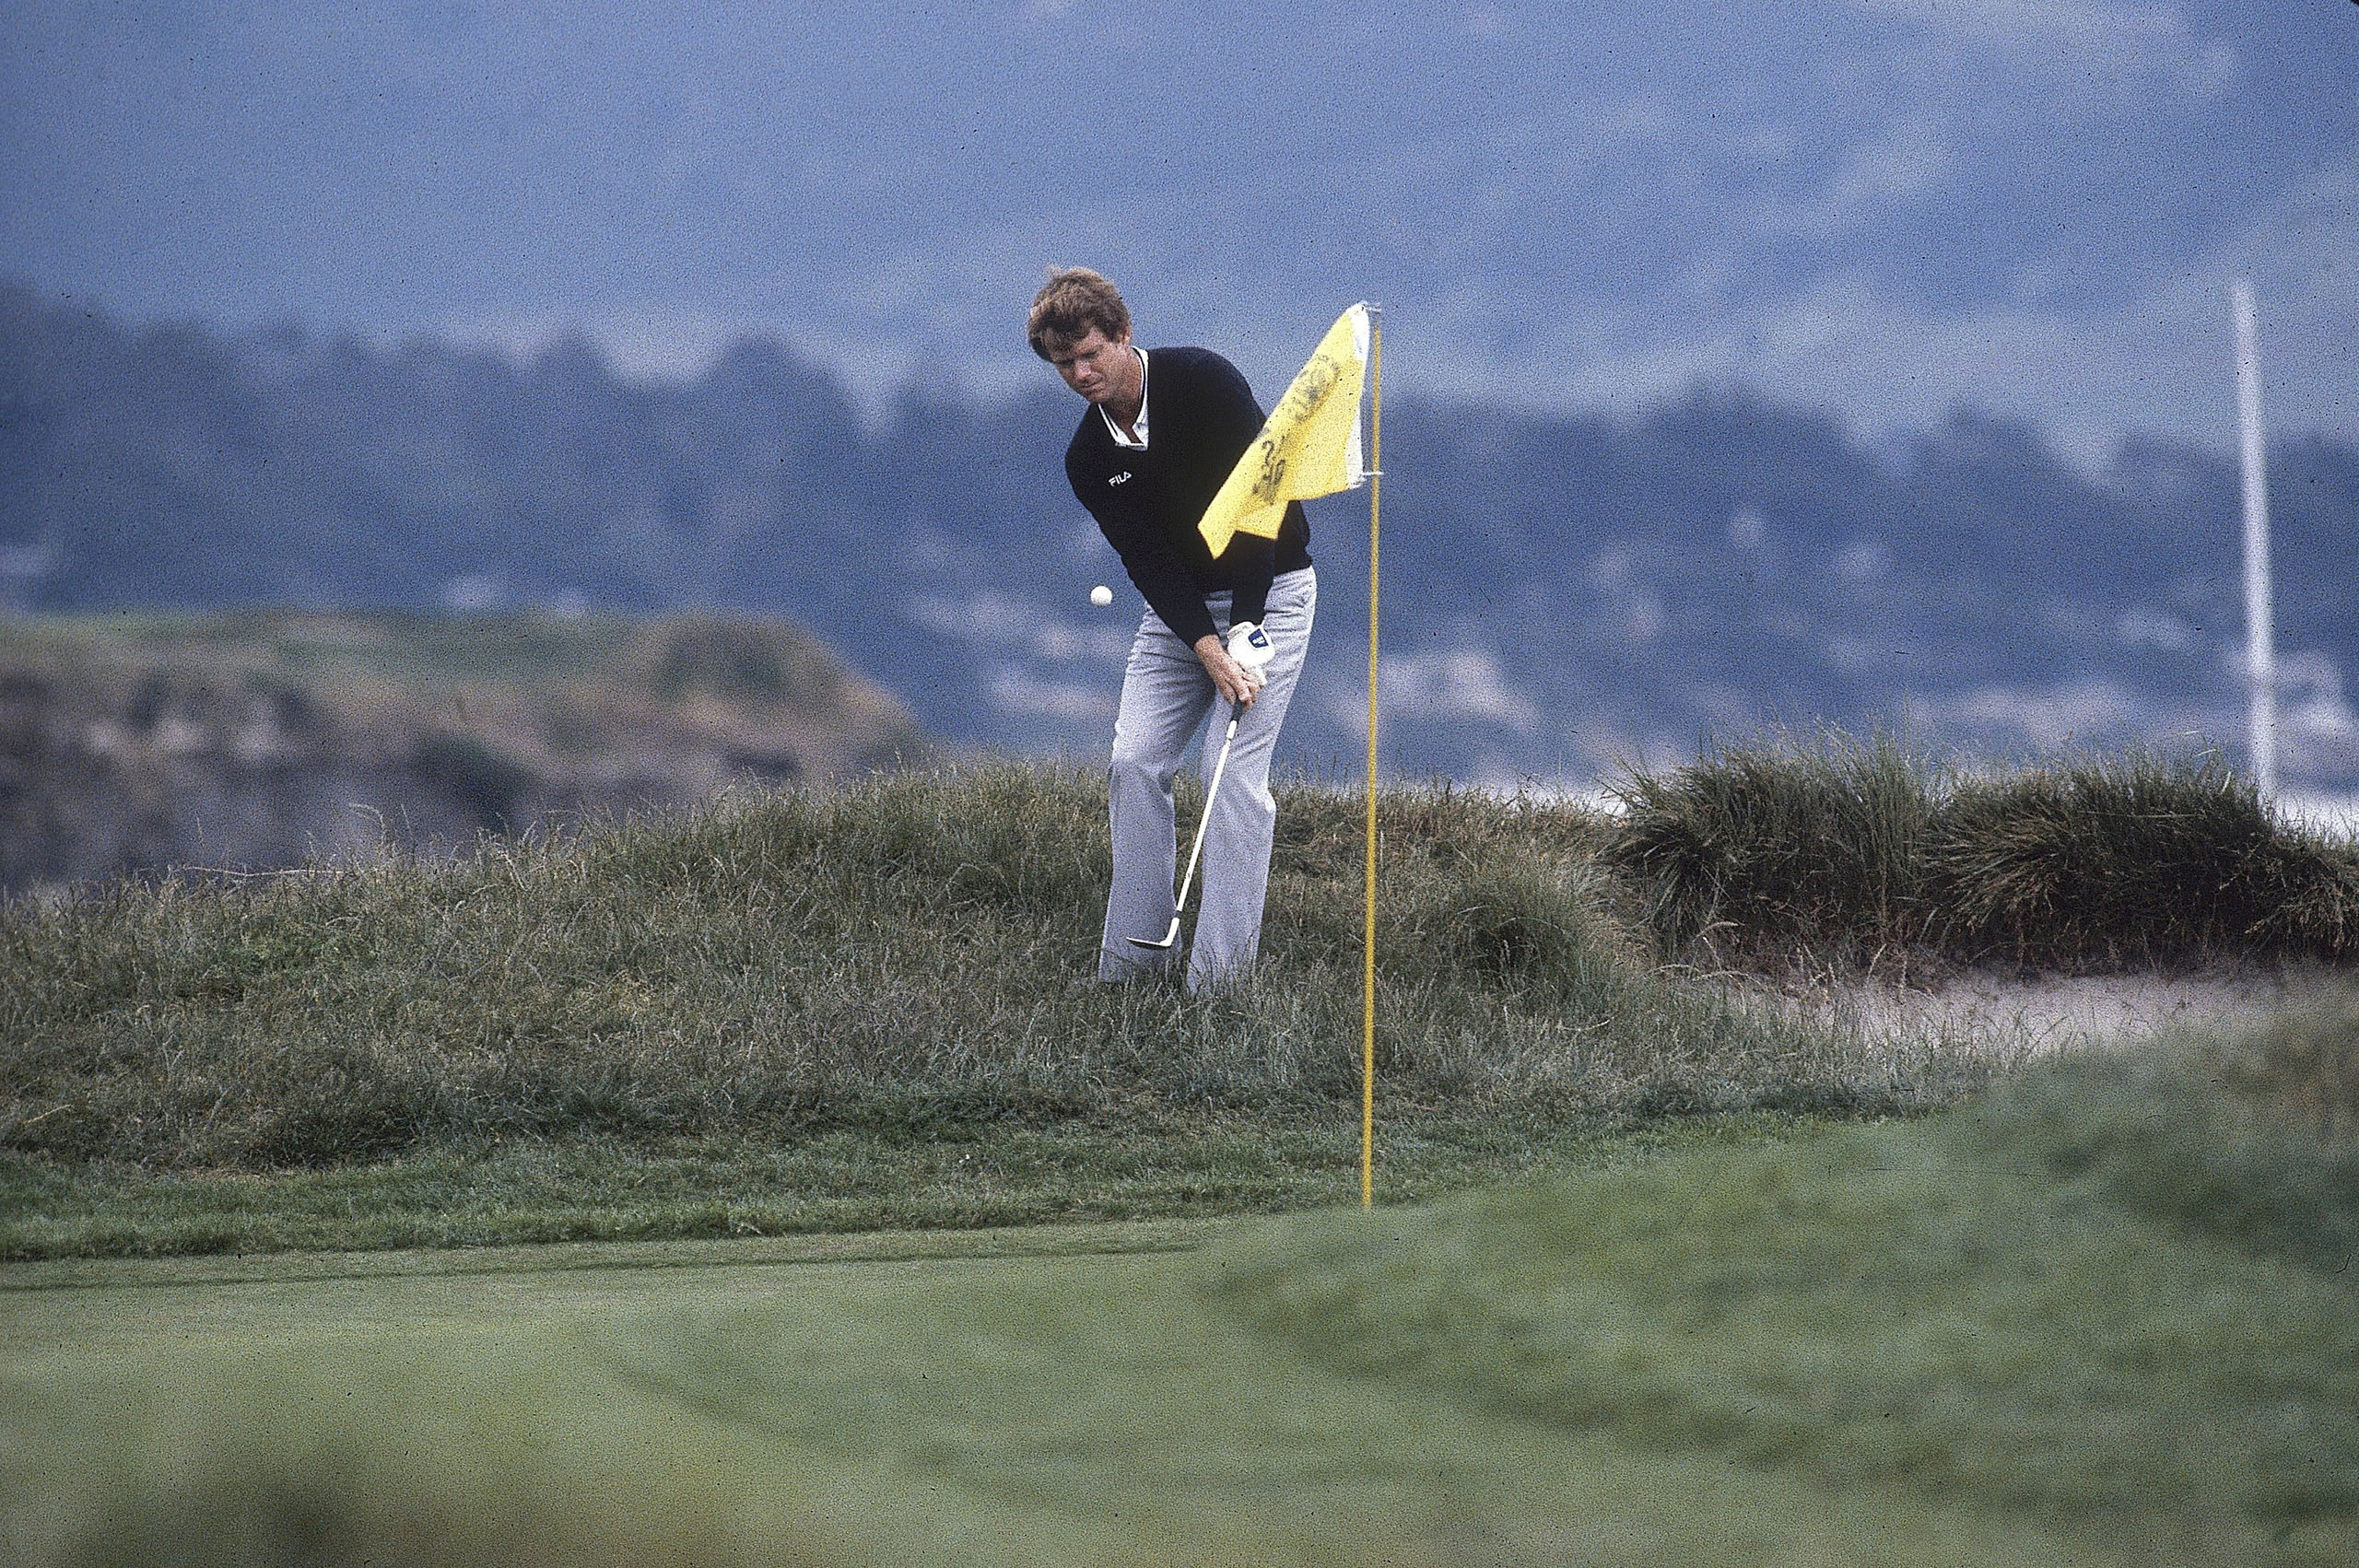 Decades later, the scene of Watson's stunner to snatch the Open from Nicklaus remains fresh in the author's mind. It's become his hallowed ground: He's never on 17 Mile Drive long without returning to 17 green. Photo by Richard Mackson/Sports Illustrated/Getty Images